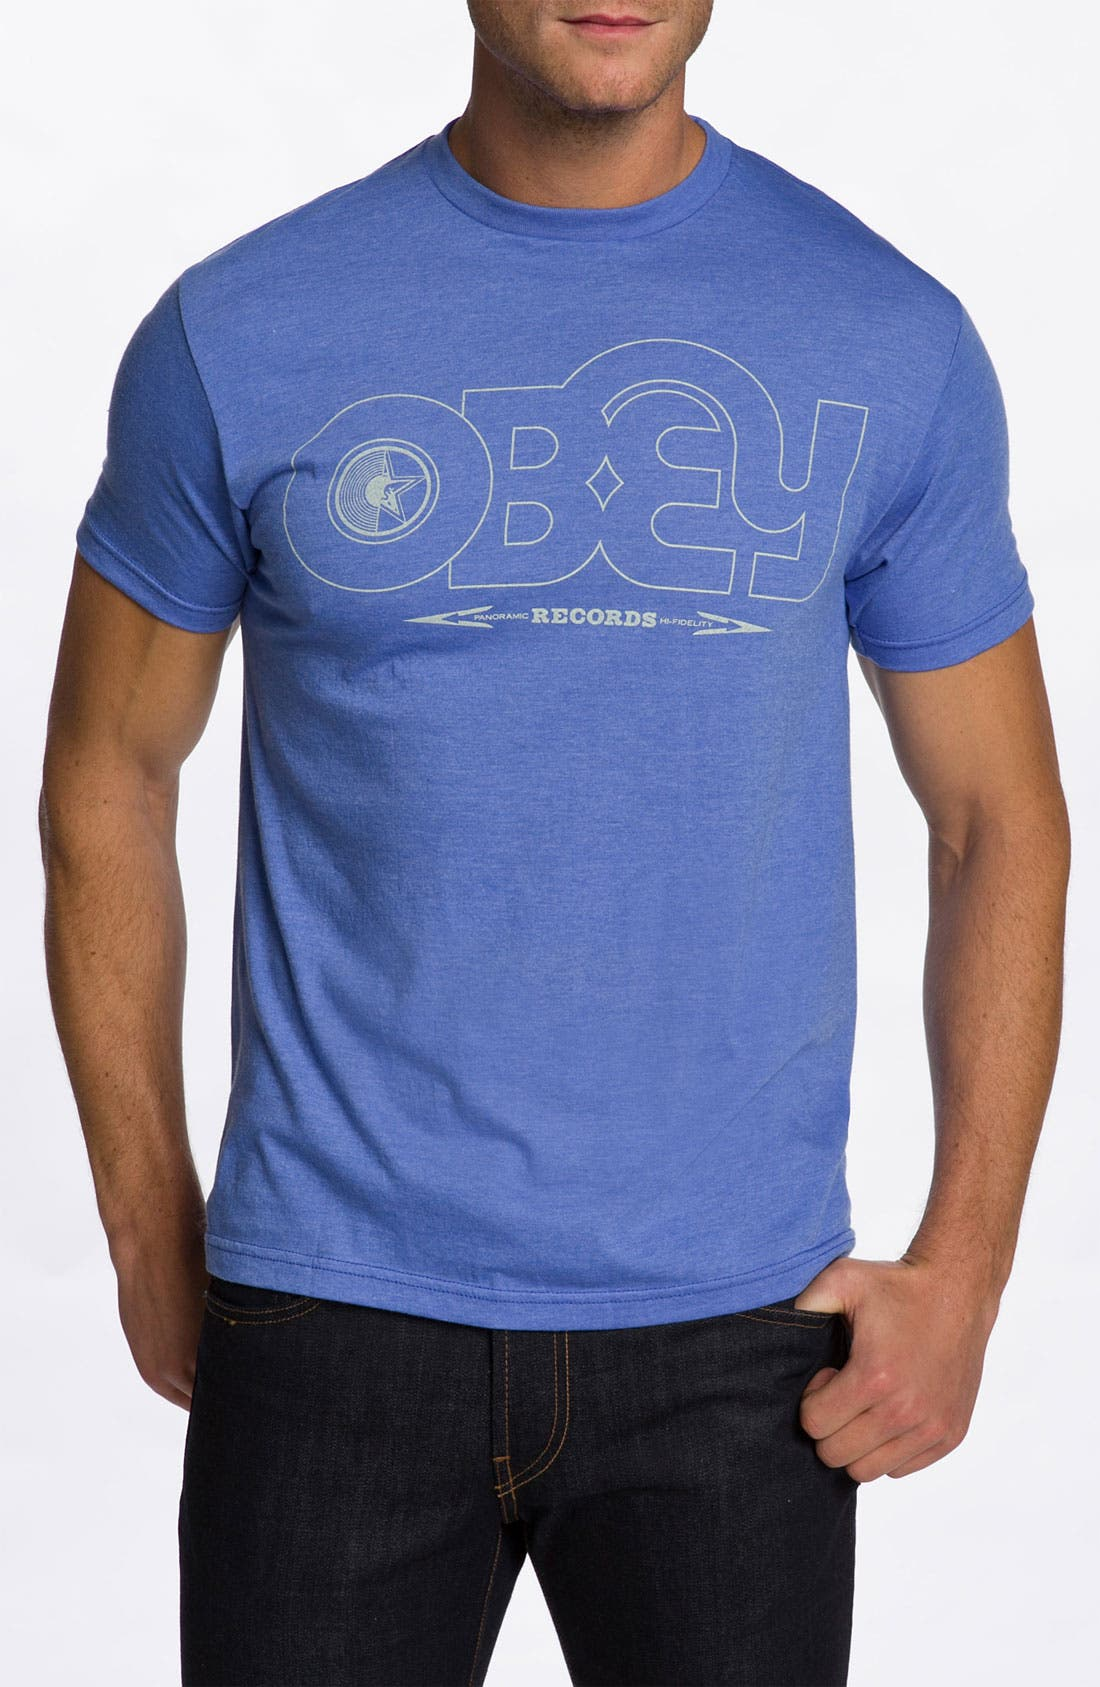 Main Image - Obey 'Voices Records' T-Shirt